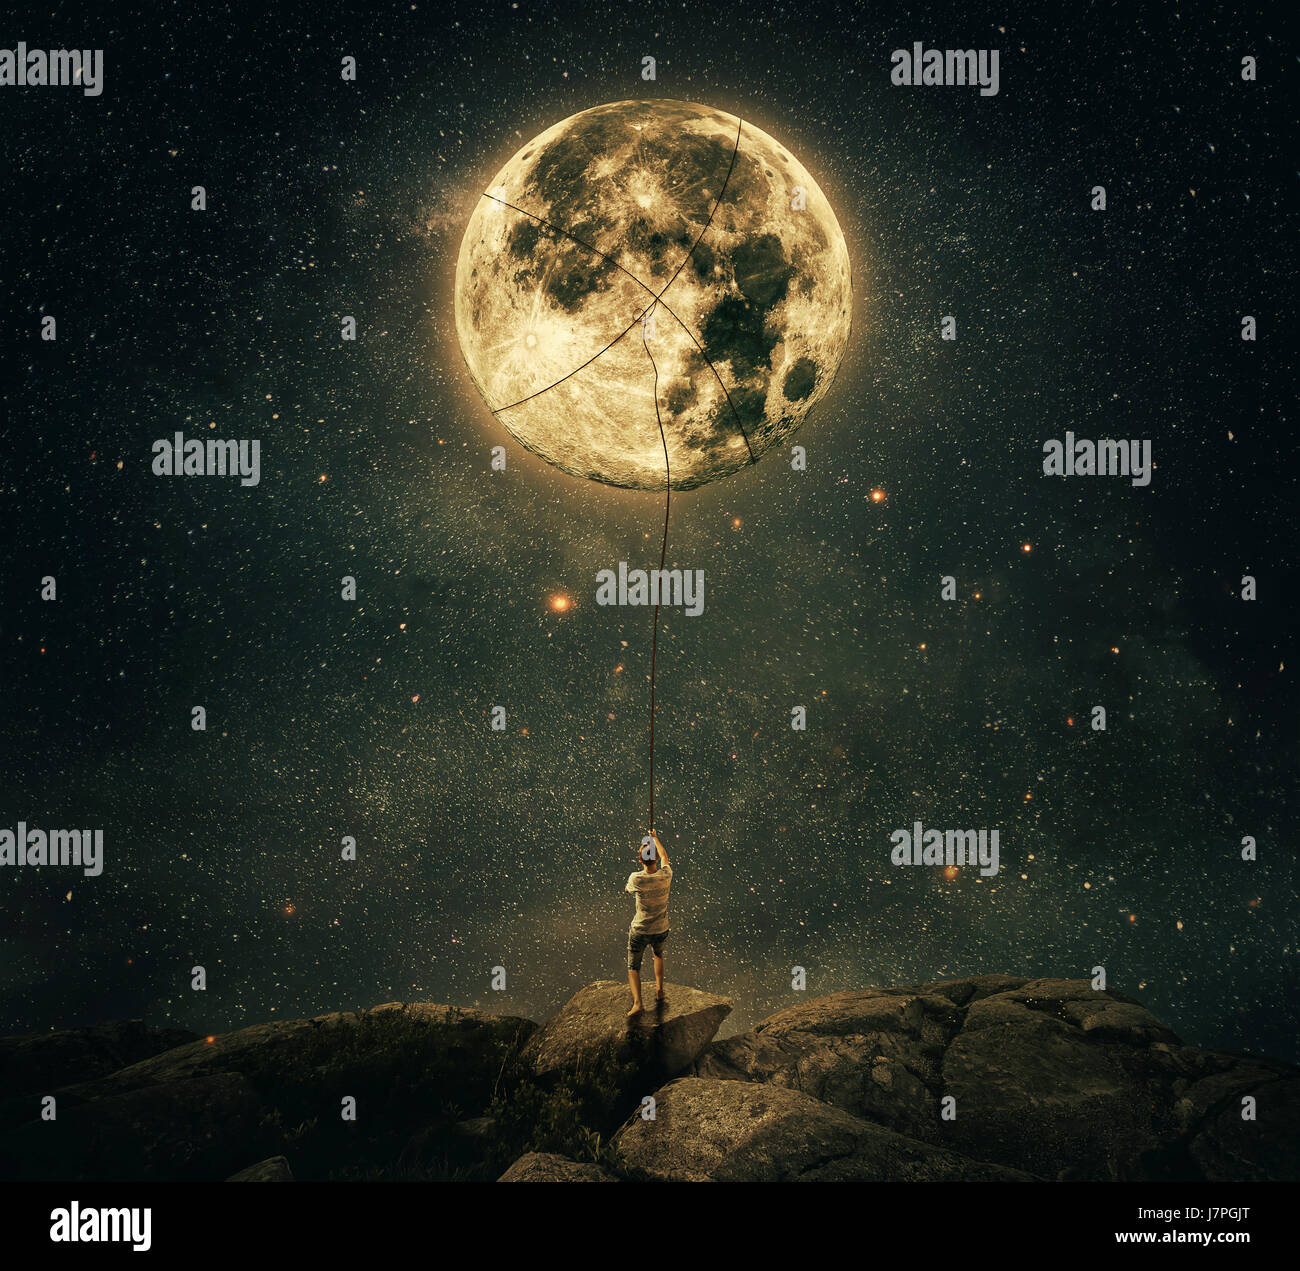 Imaginary view as a young man, holding a rope, try to catch and pull the full moon from the night sky. Achievement - Stock Image